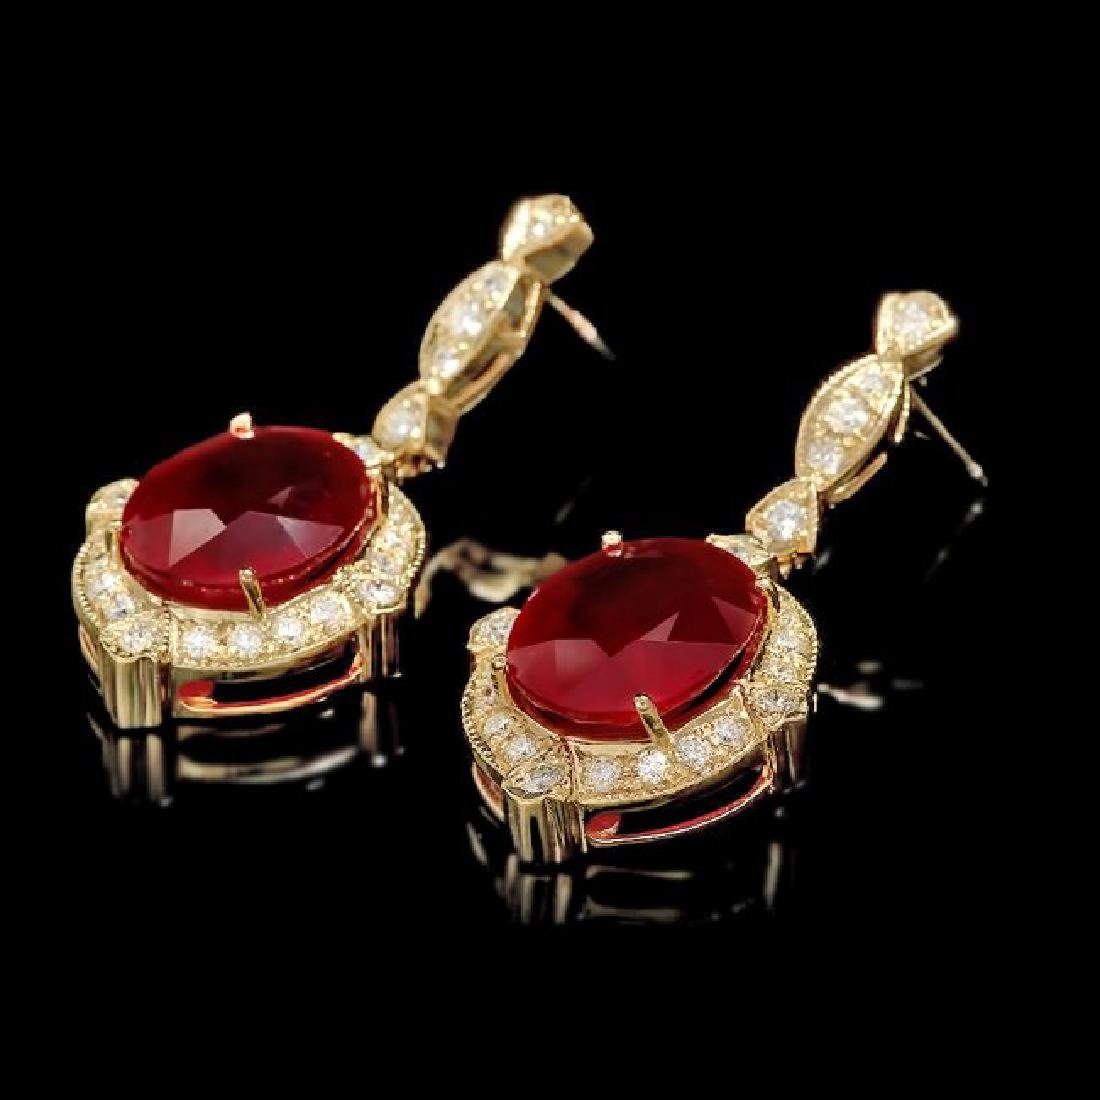 14k Gold 22.50ct Ruby 1.70ct Diamond Earrings - 3